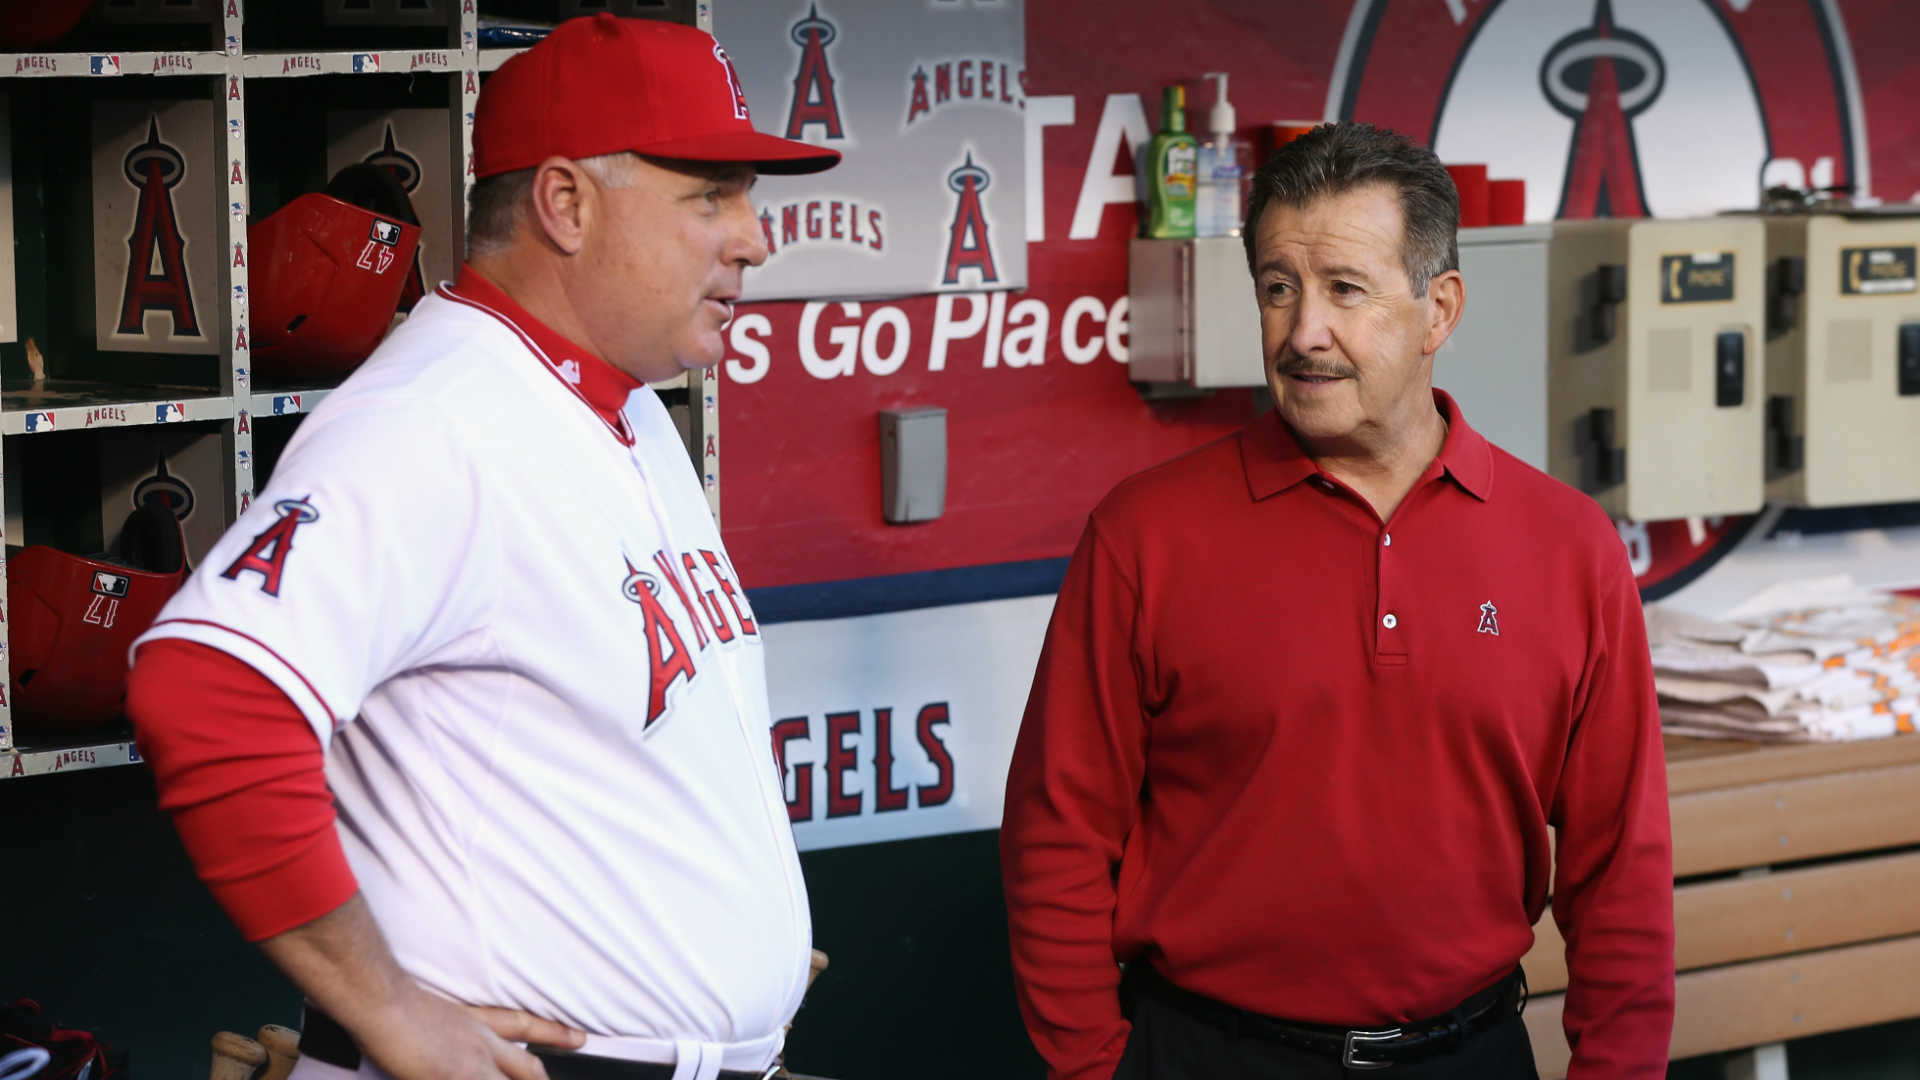 Angels owner Arte Moreno chose old-school Mike Scioscia over analytics-minded Jerry Dipoto